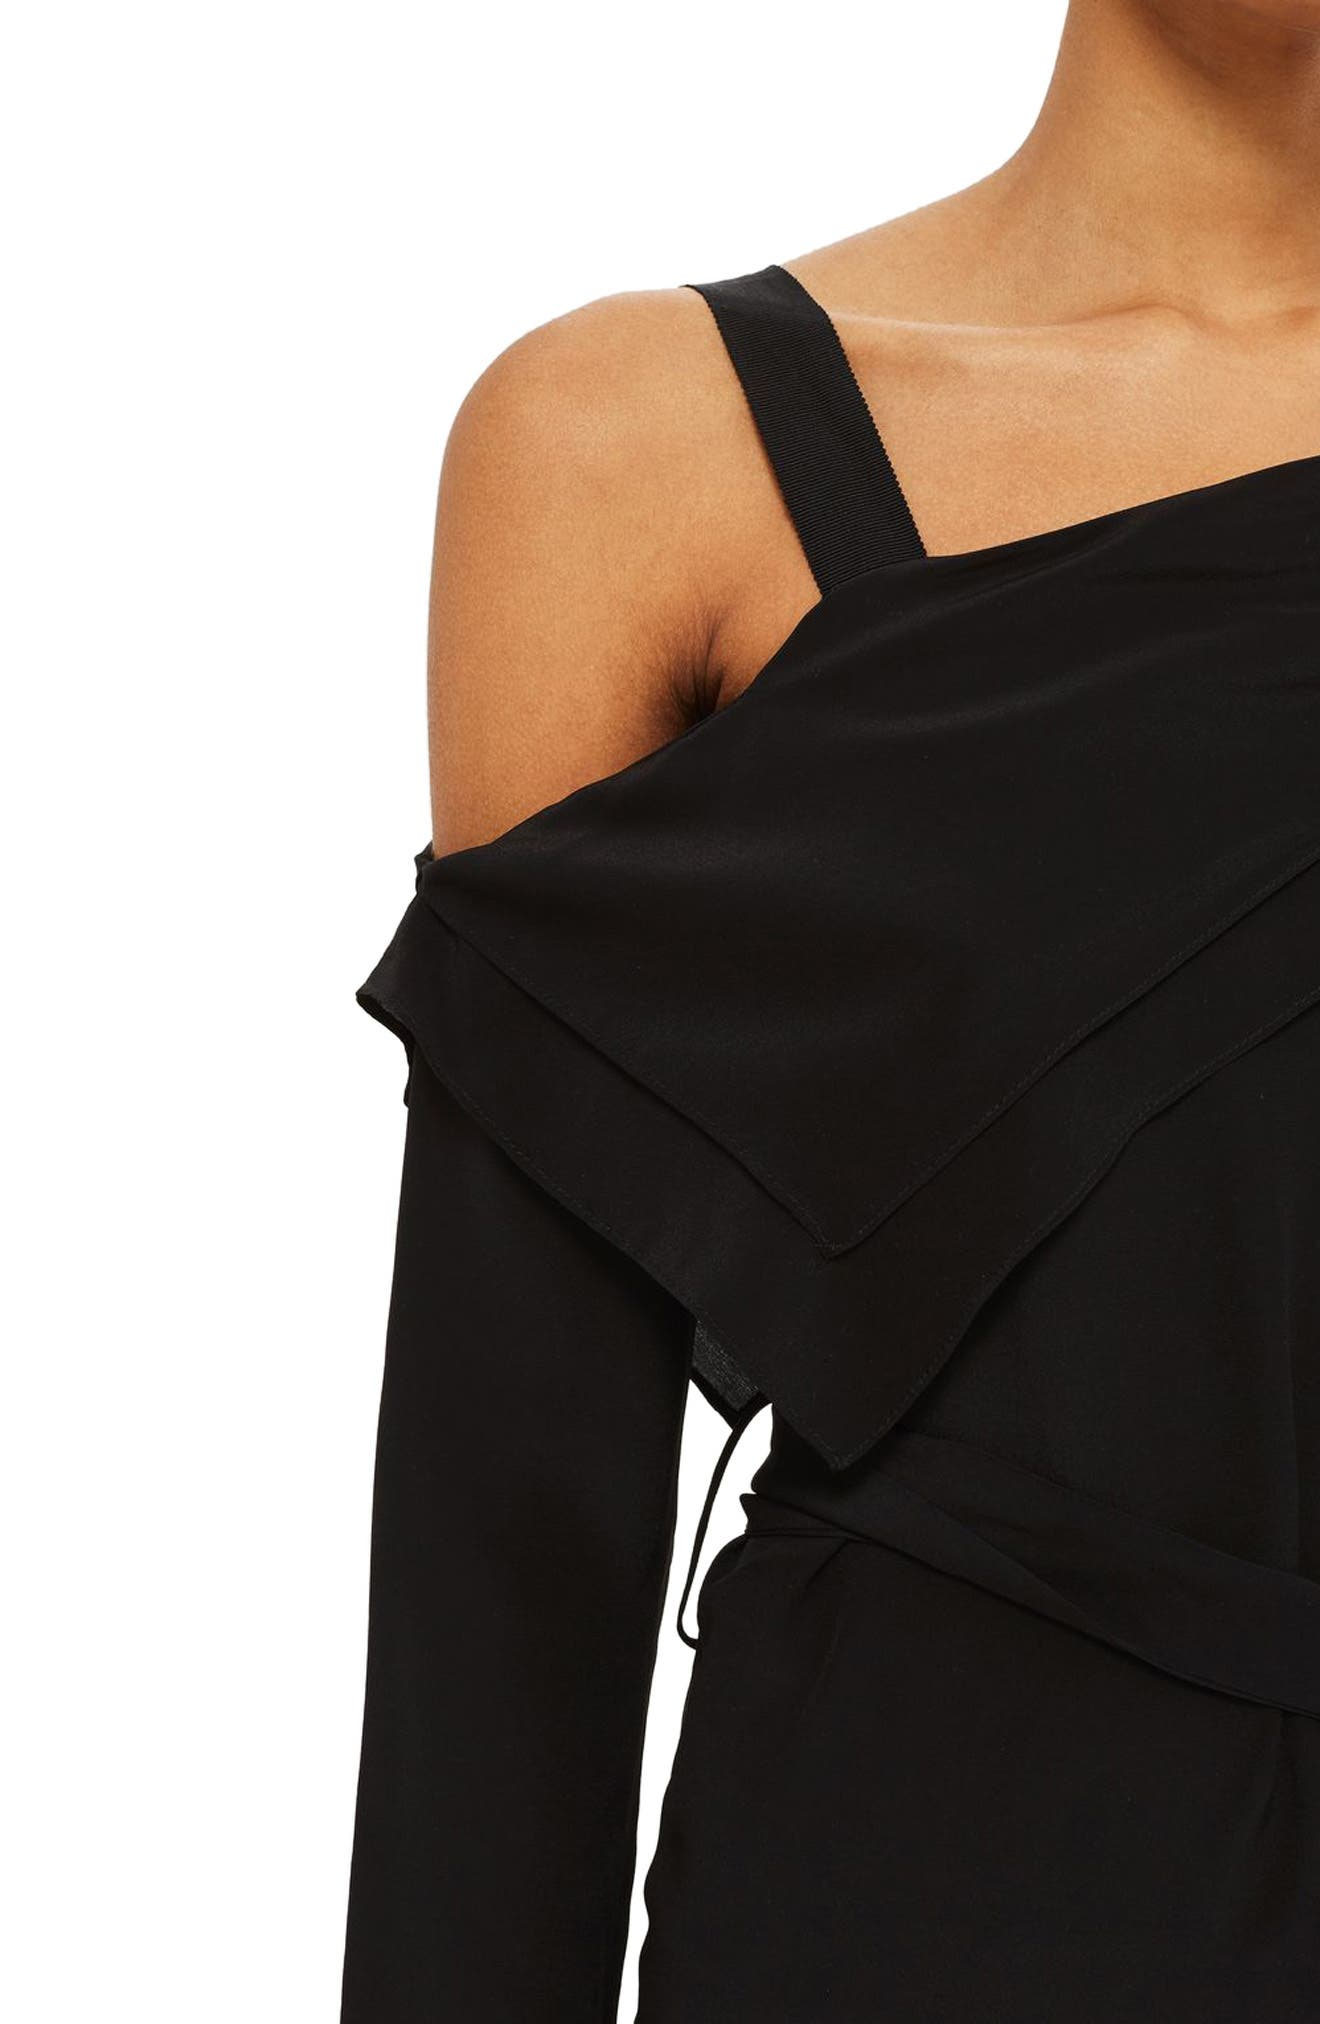 Off the Shoulder Silk Drape Dress,                             Alternate thumbnail 4, color,                             001